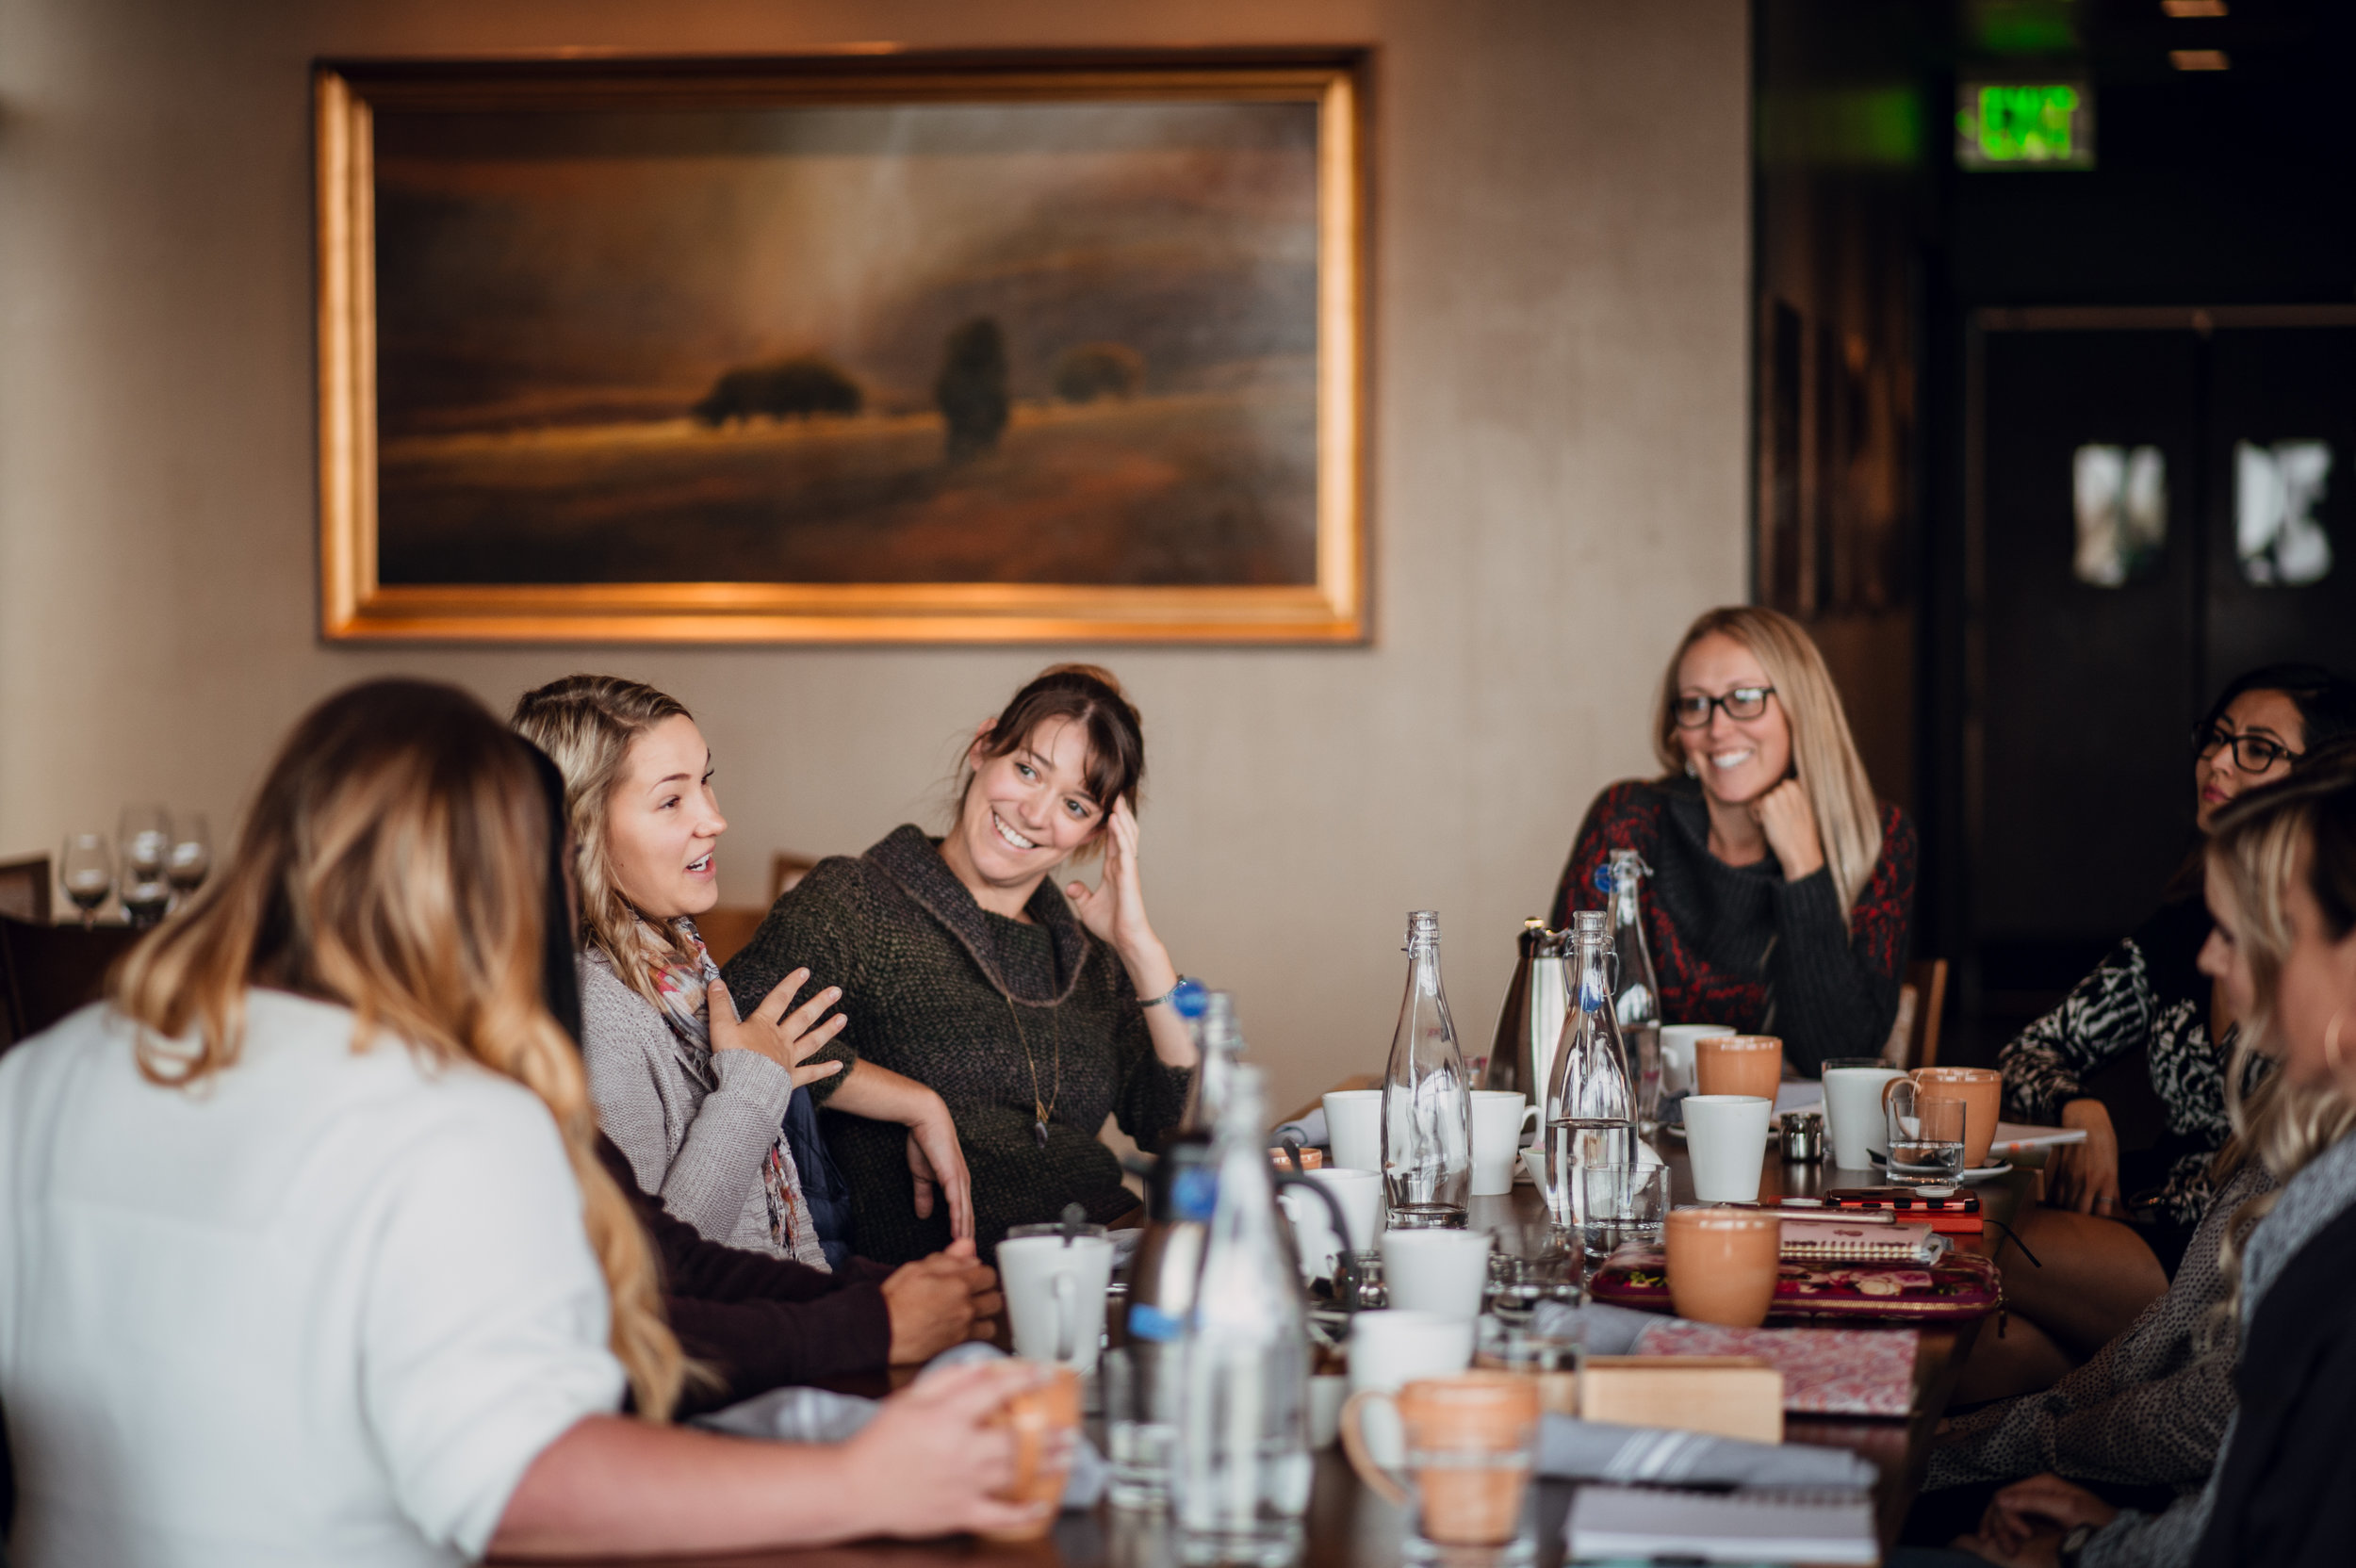 In-Person Masterminds - Our in-person mastermind groups provoke new ways of thinking, provide invaluable insights, and promote friendship and connection in your local community.